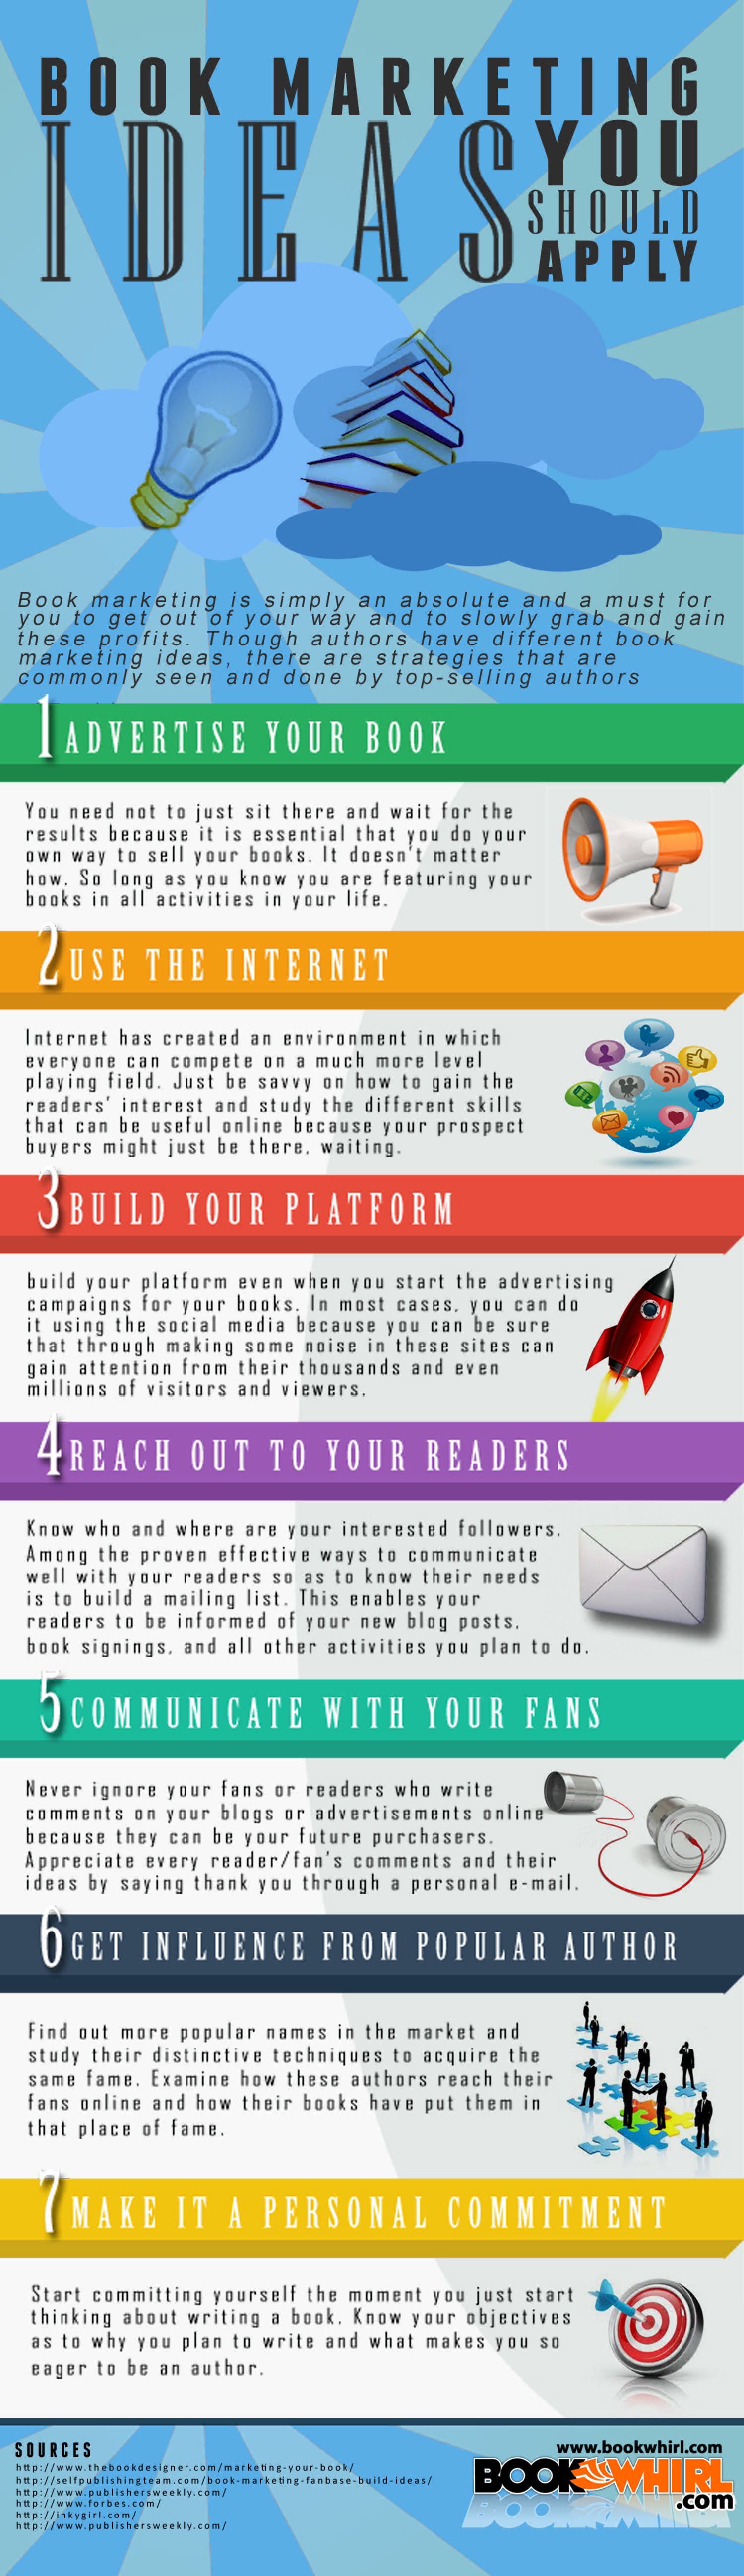 Book Marketing Ideas You Should Apply Infographic